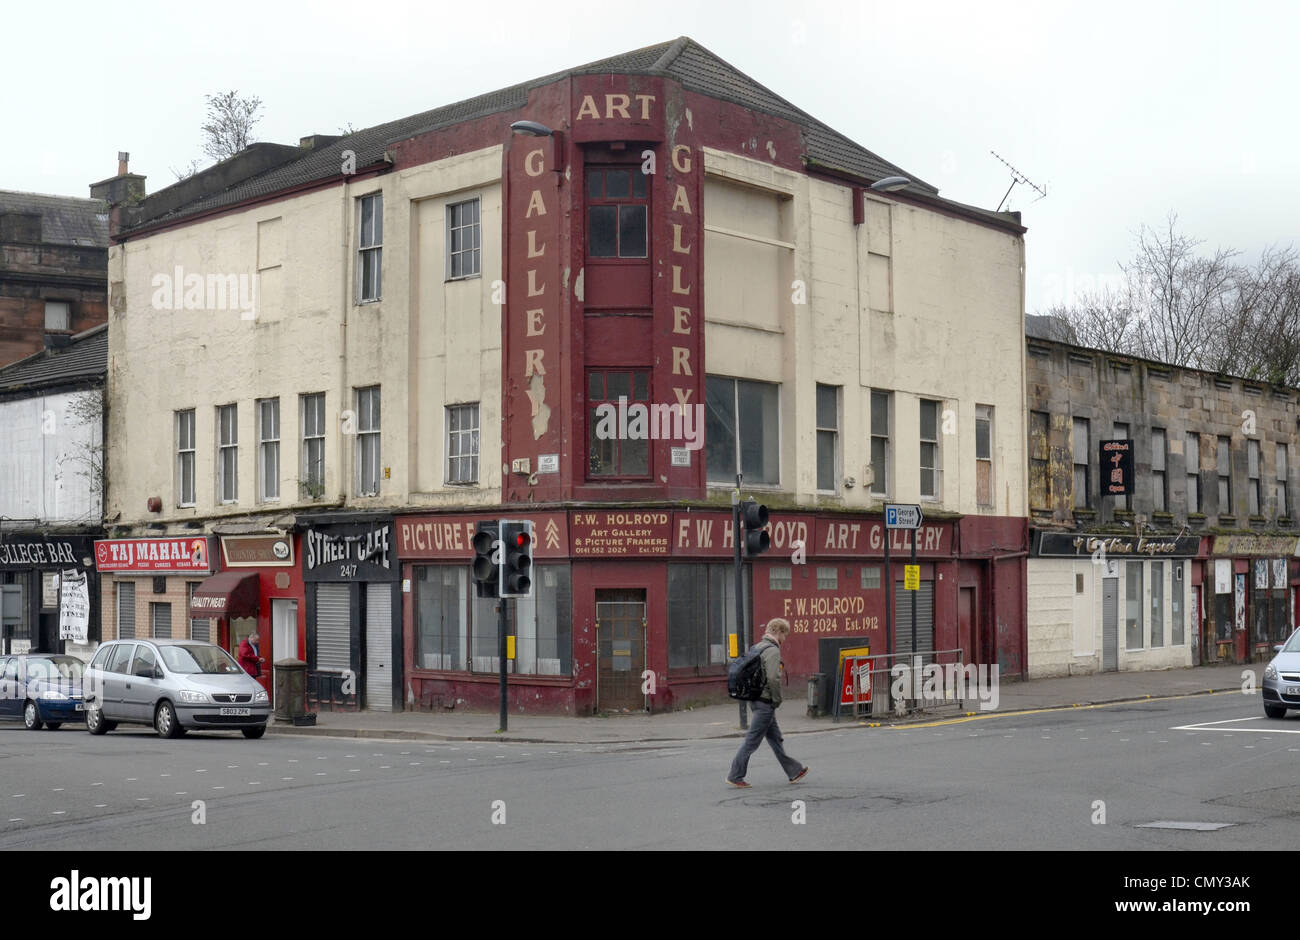 Some rather sad and rundown retail premises in Glasgow at the junction of High Street and George Street. - Stock Image